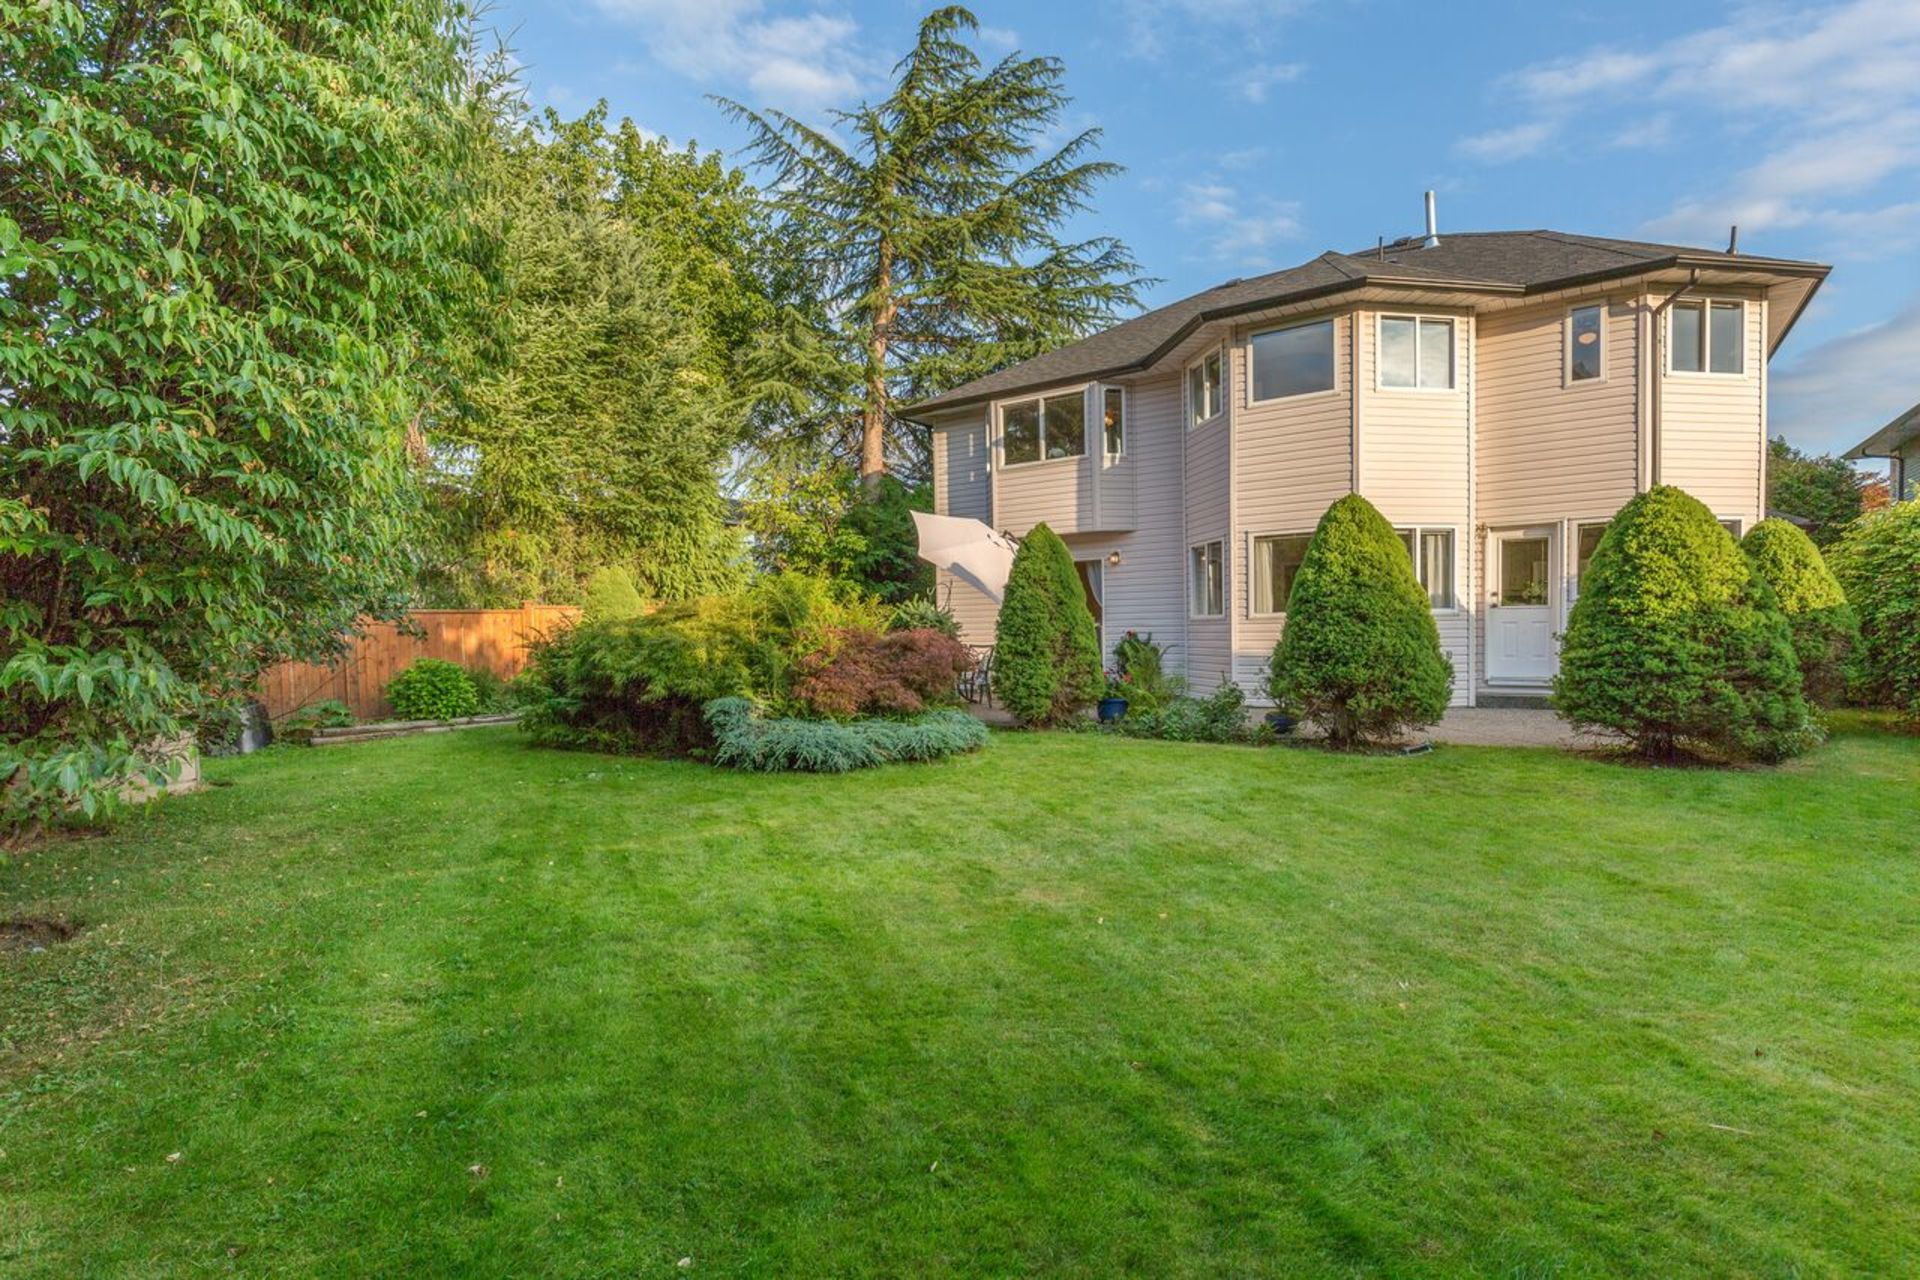 eqap4gmw at 19373 119 Avenue, Central Meadows, Pitt Meadows